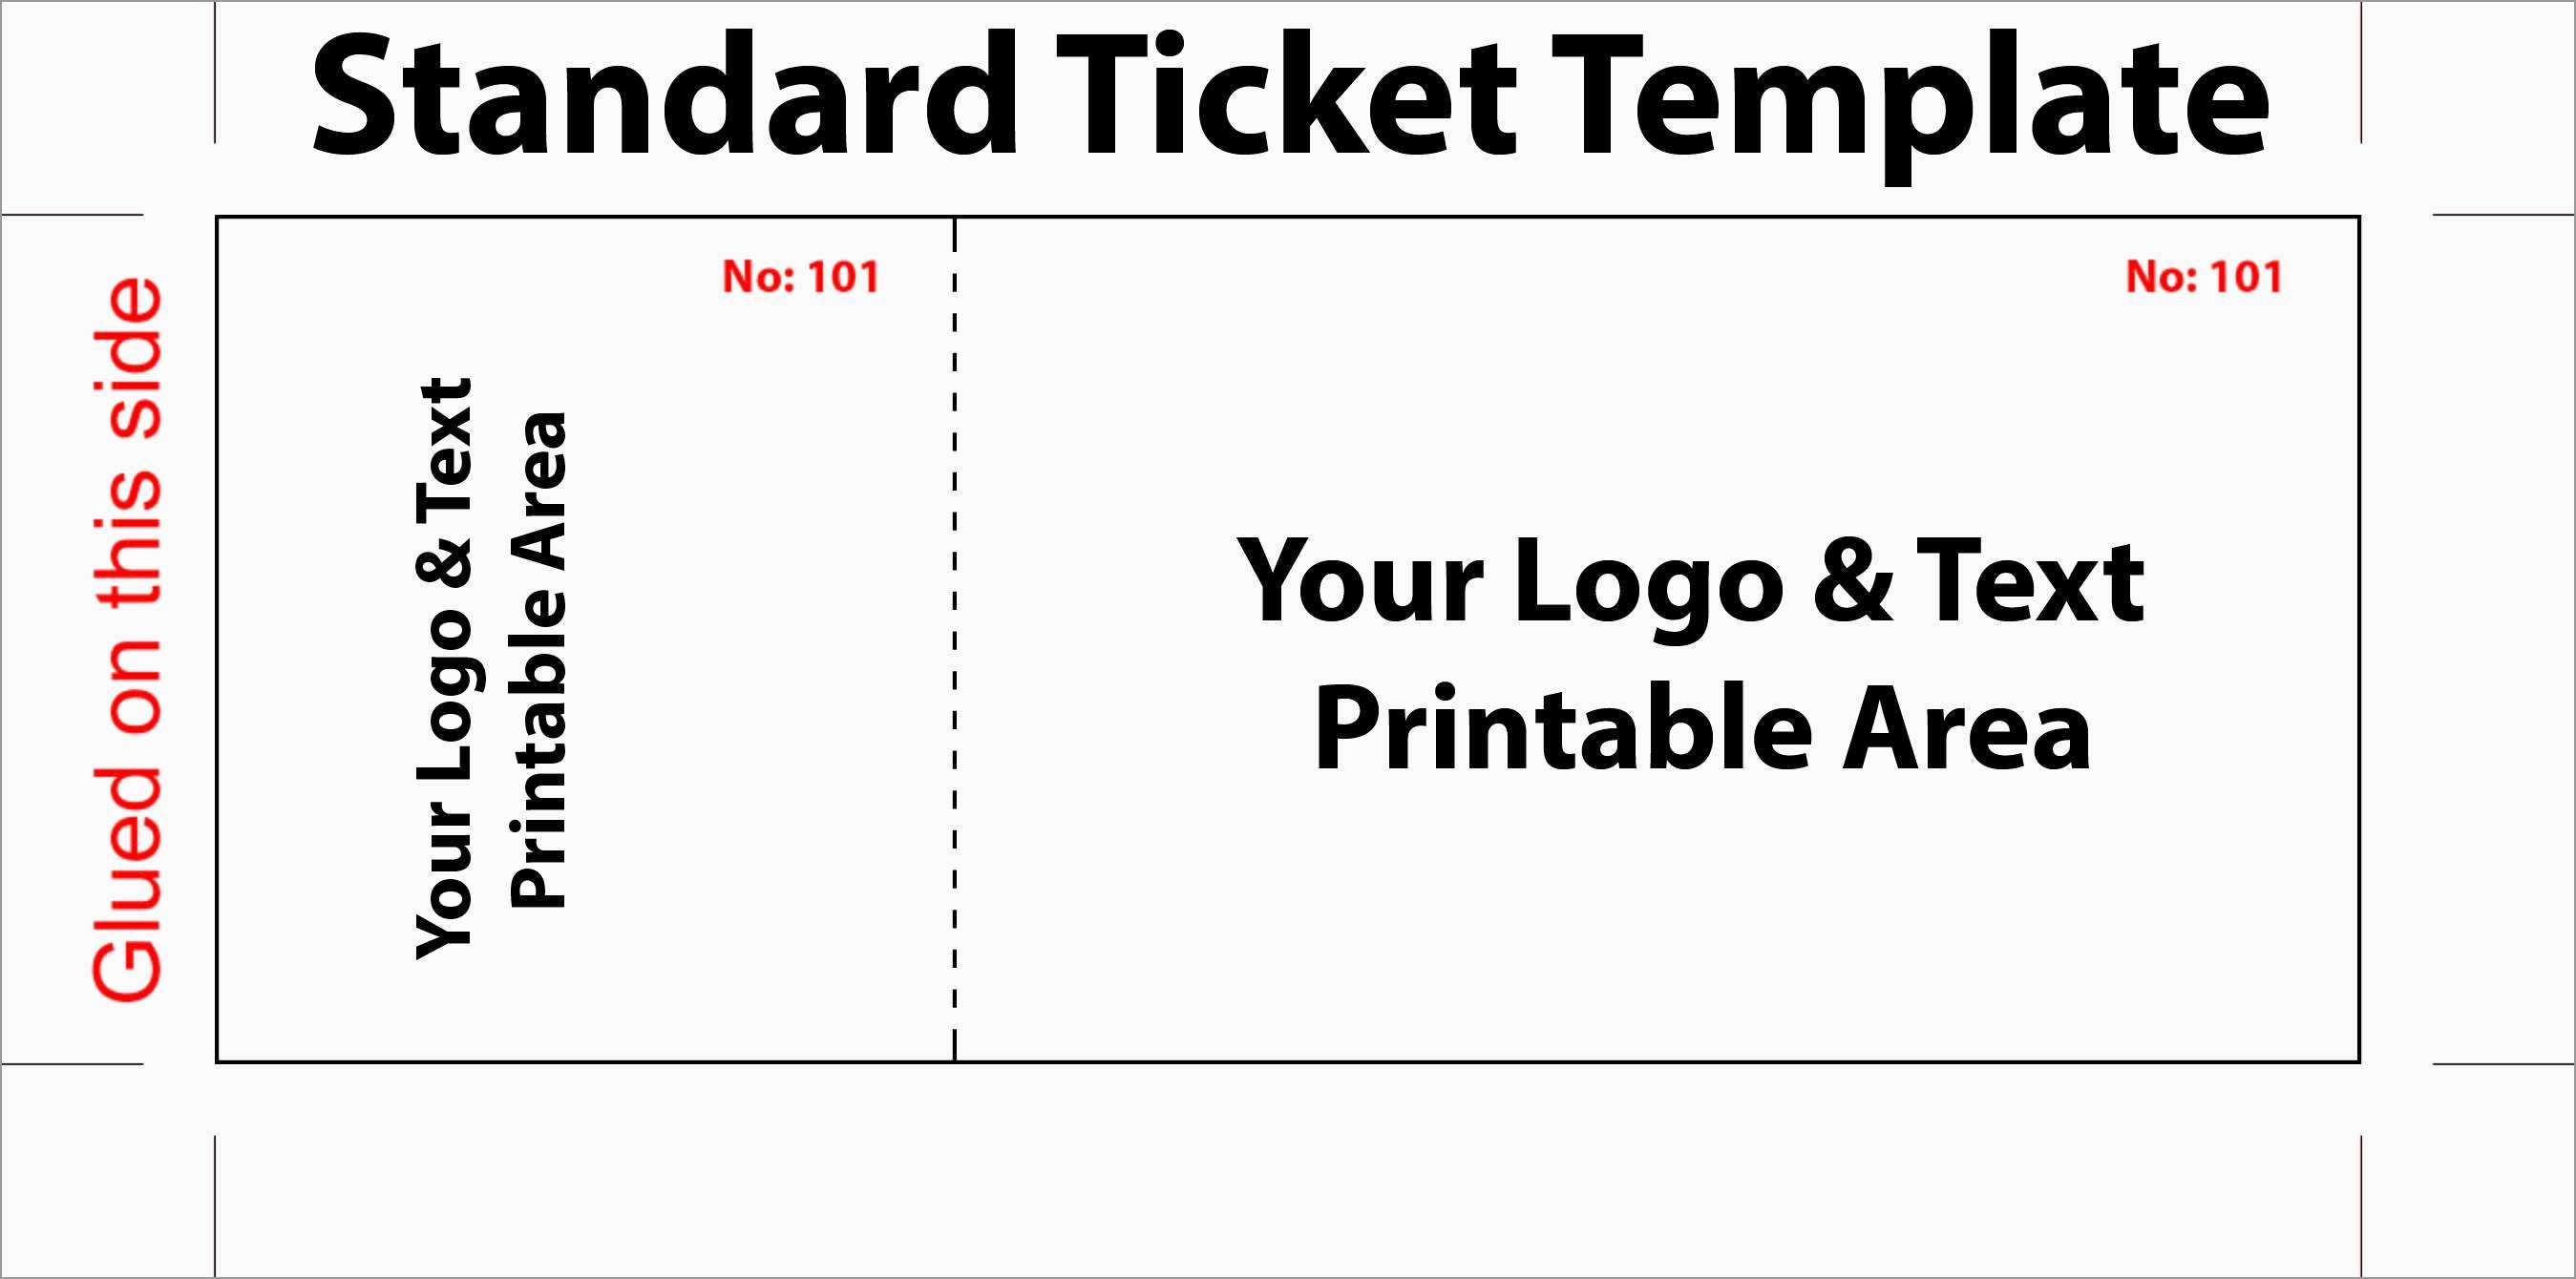 New Free Printable Raffle Ticket Template Download | Best Of Template - Free Printable Raffle Ticket Template Download